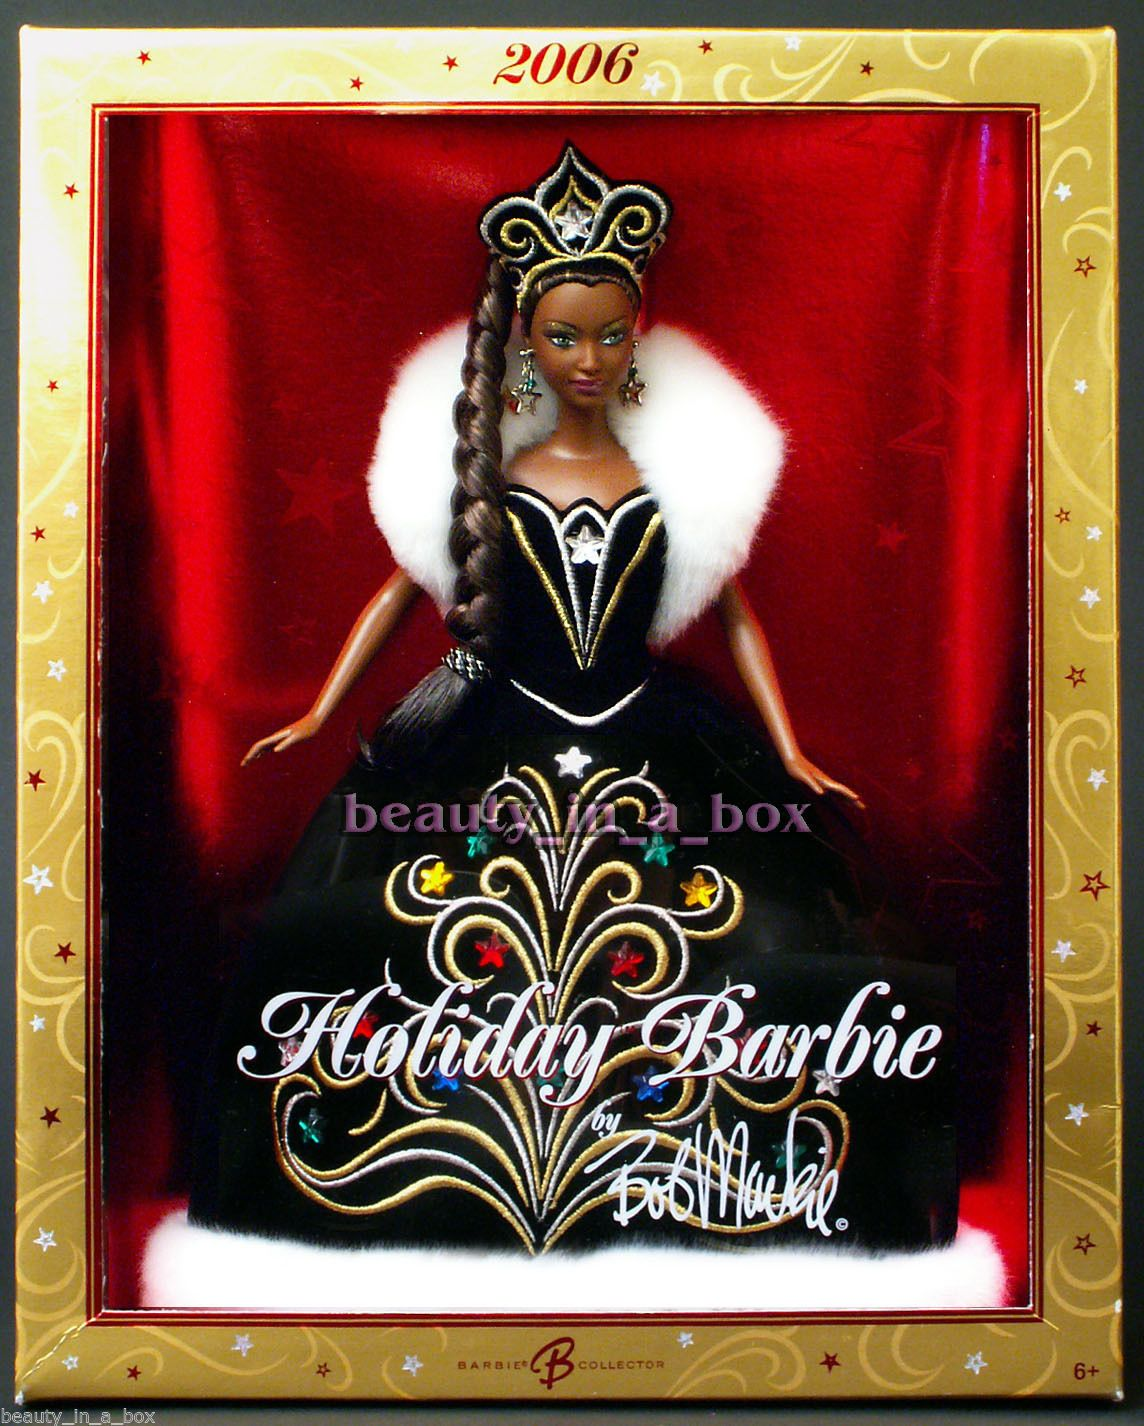 2006 Holiday Barbie Doll Celebration Christmas AA African